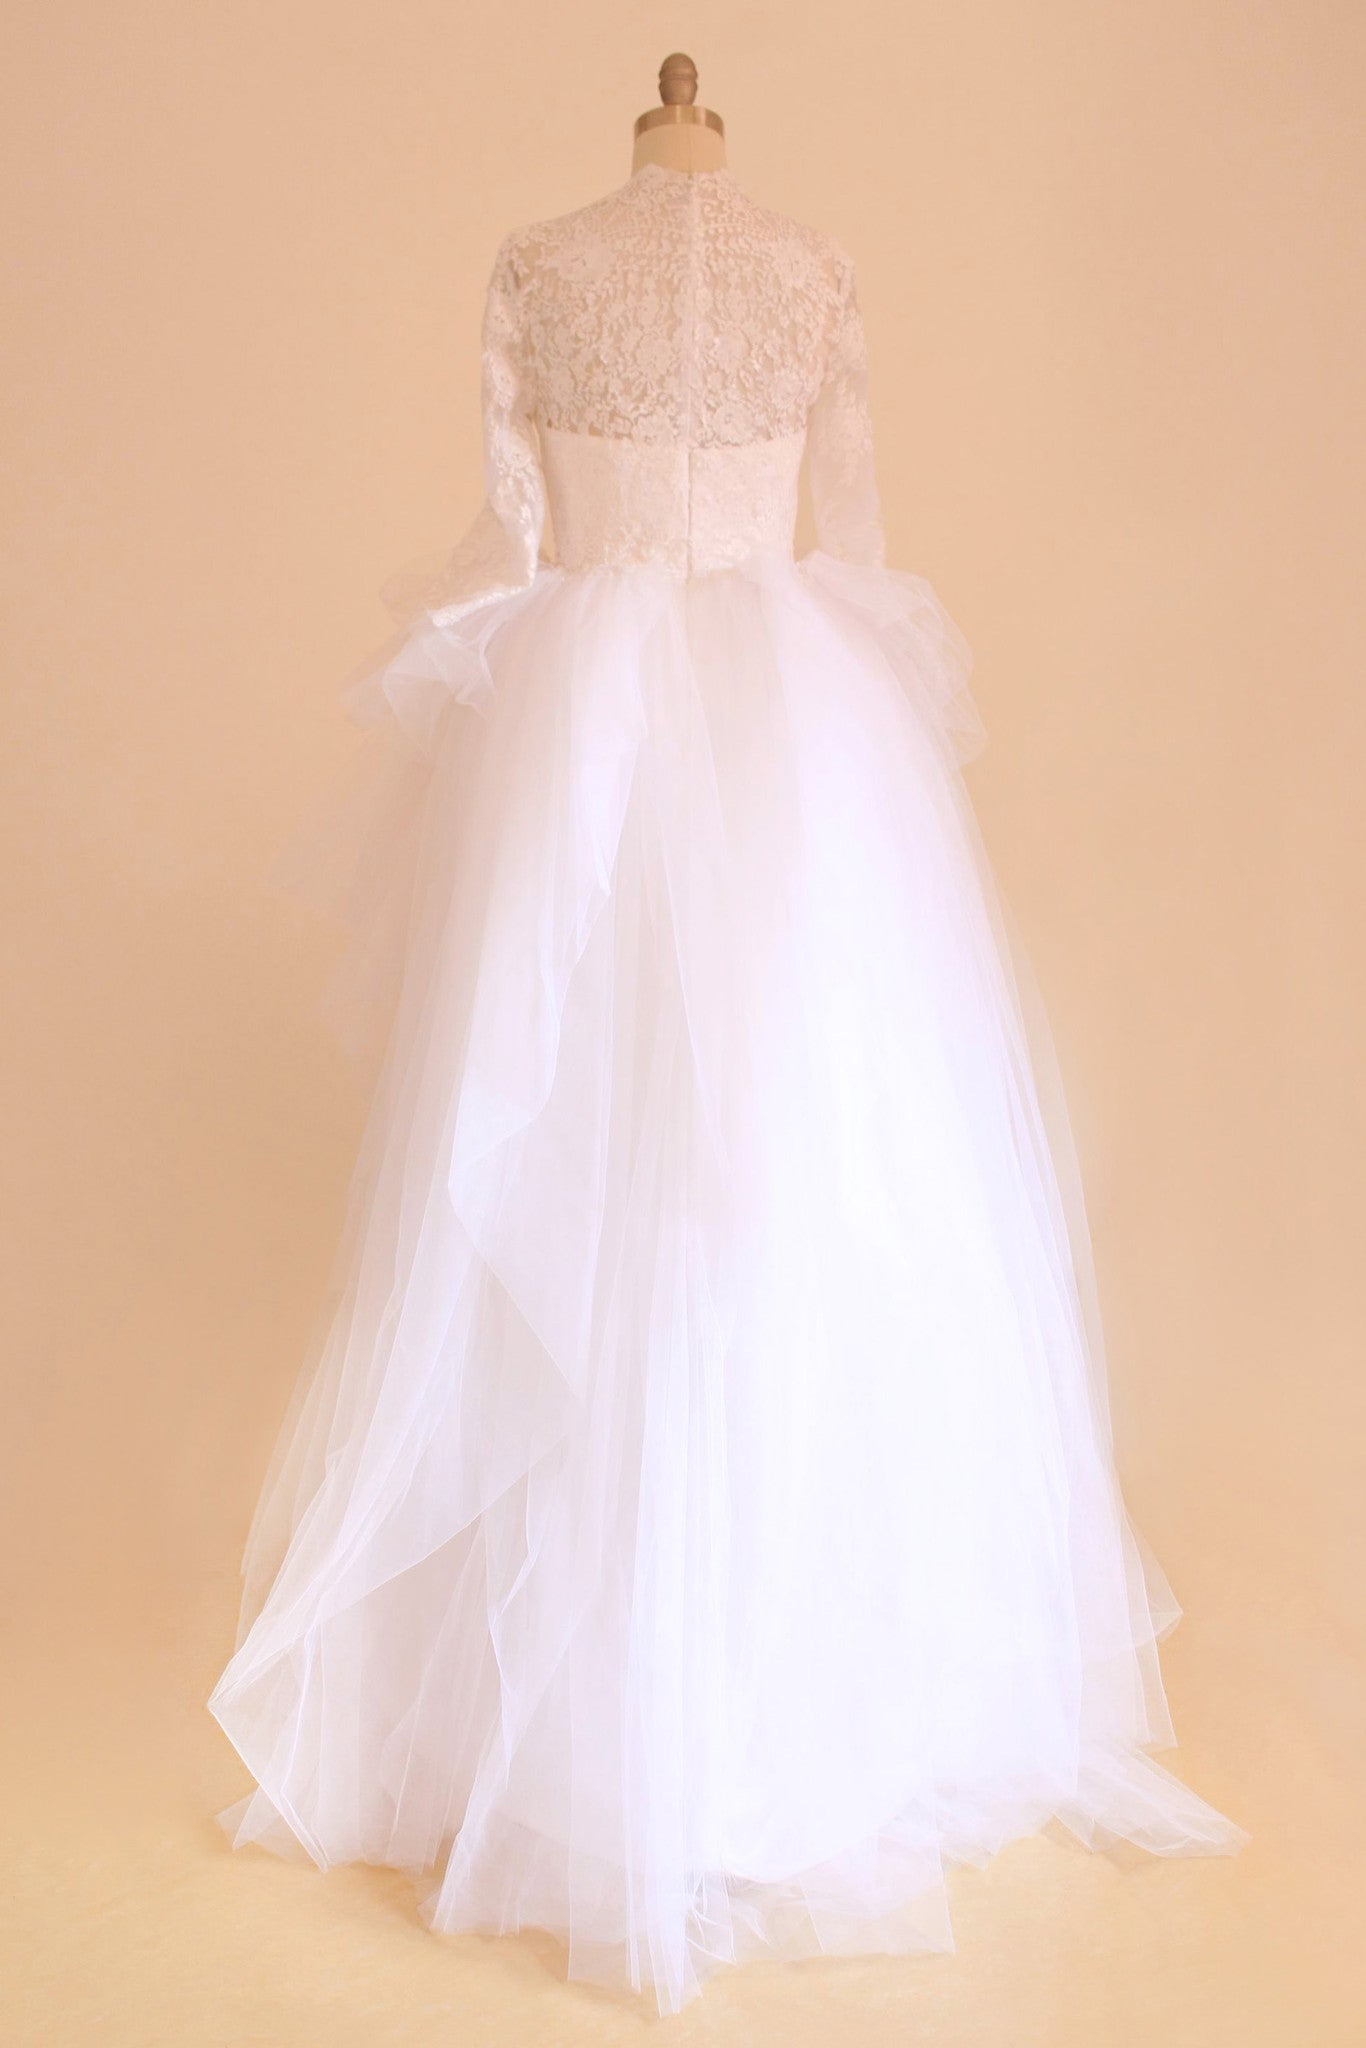 Sheer Lace Ball Gown Bridal Dress Maternity - Yalan Wedding Couture